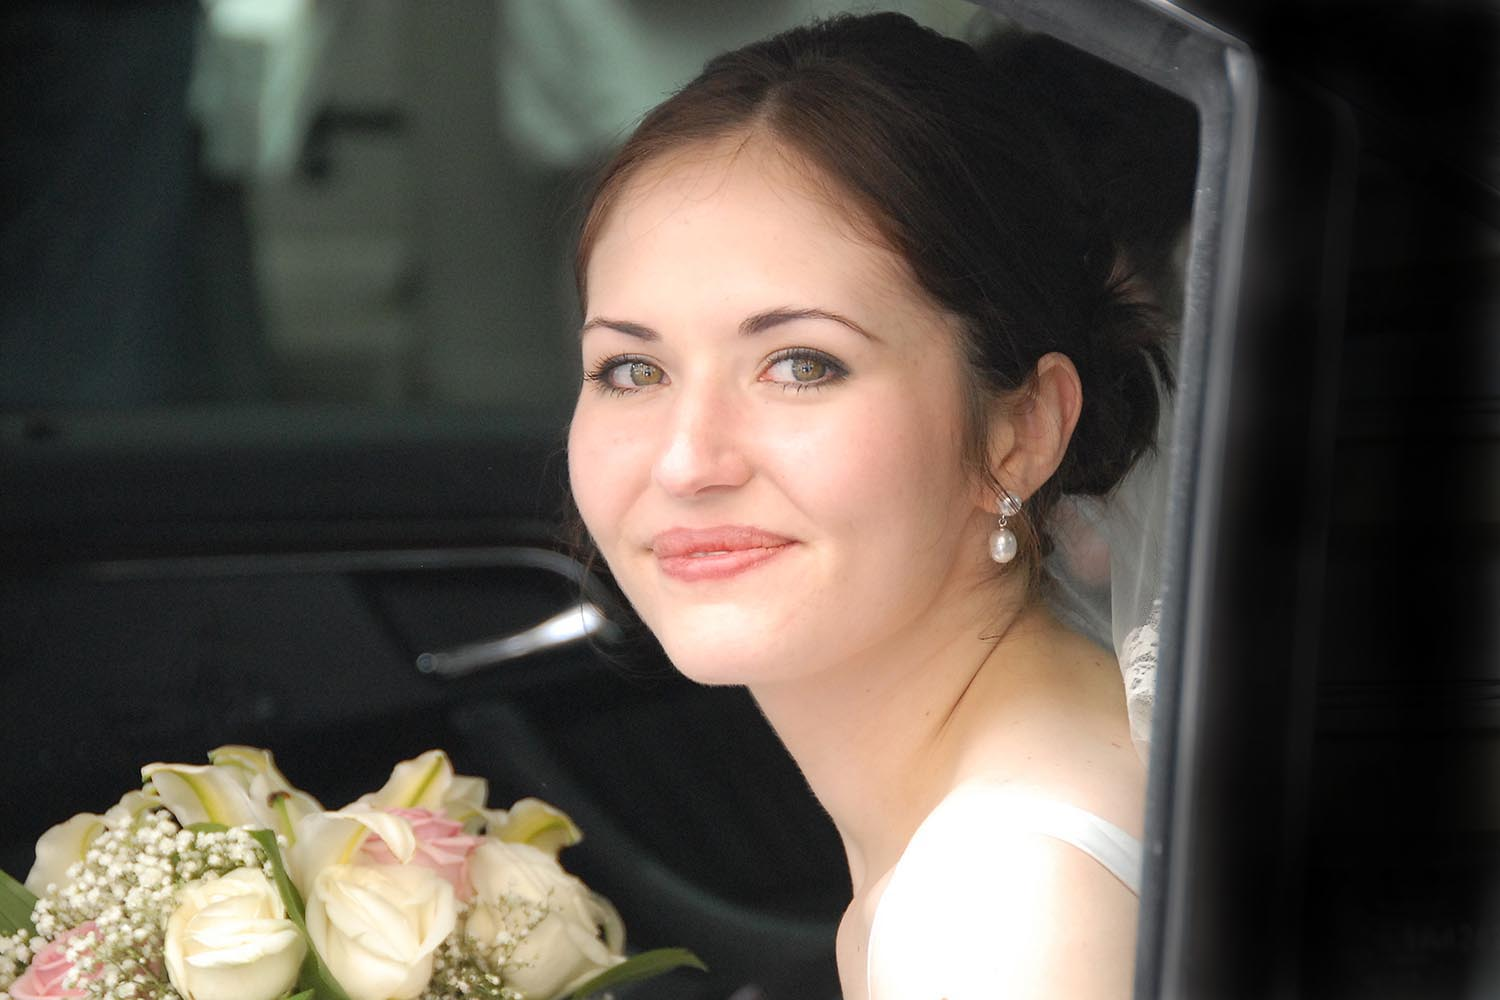 Portrait of bride holding a bouquet of flowers in limousine